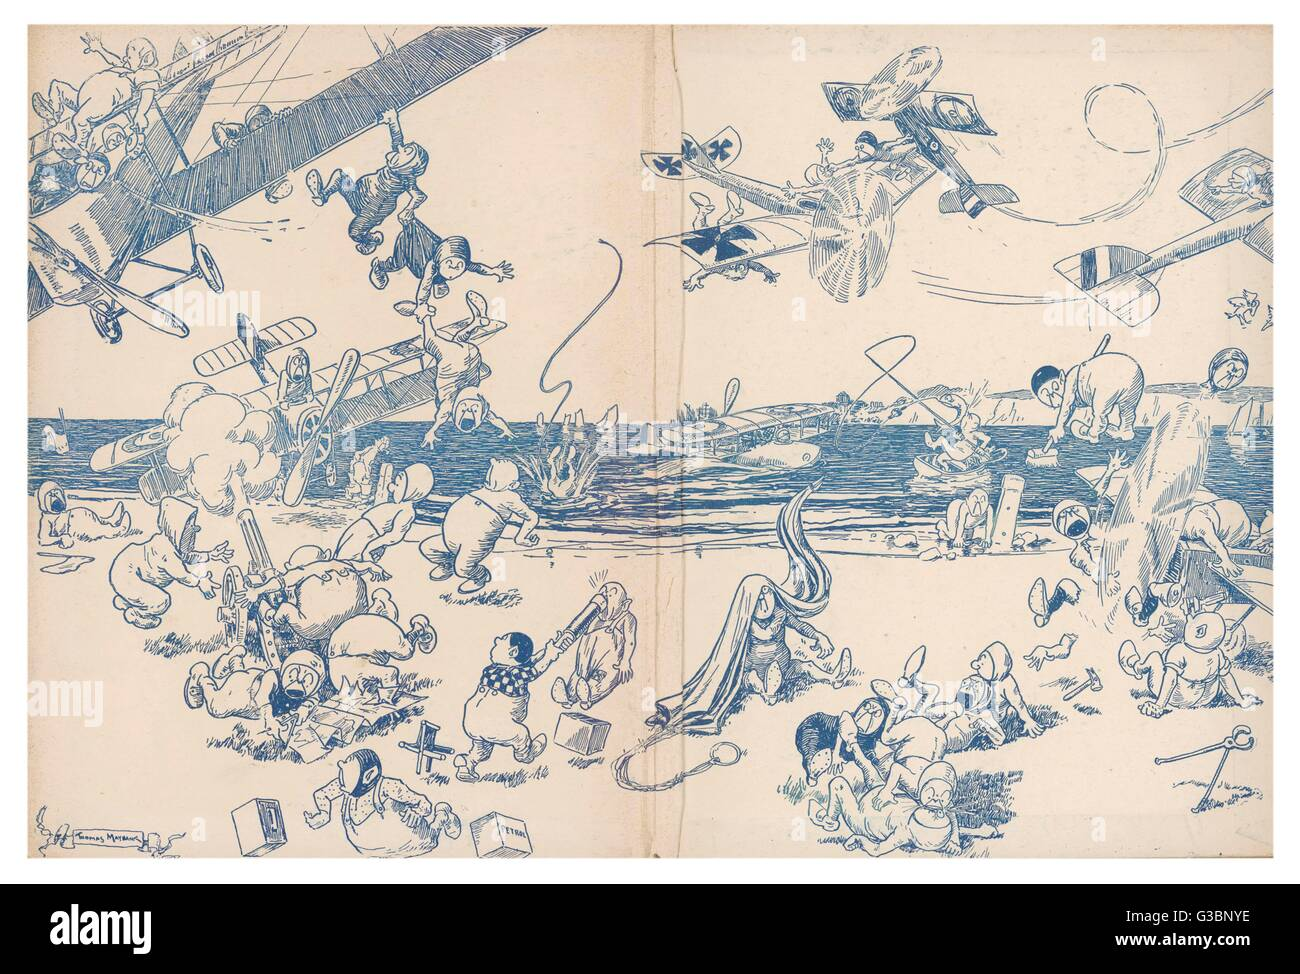 Illustration 2/2  A comical cartoon showing  elves or possibly pixies  getting into mischief with  various aircraft - Stock Image